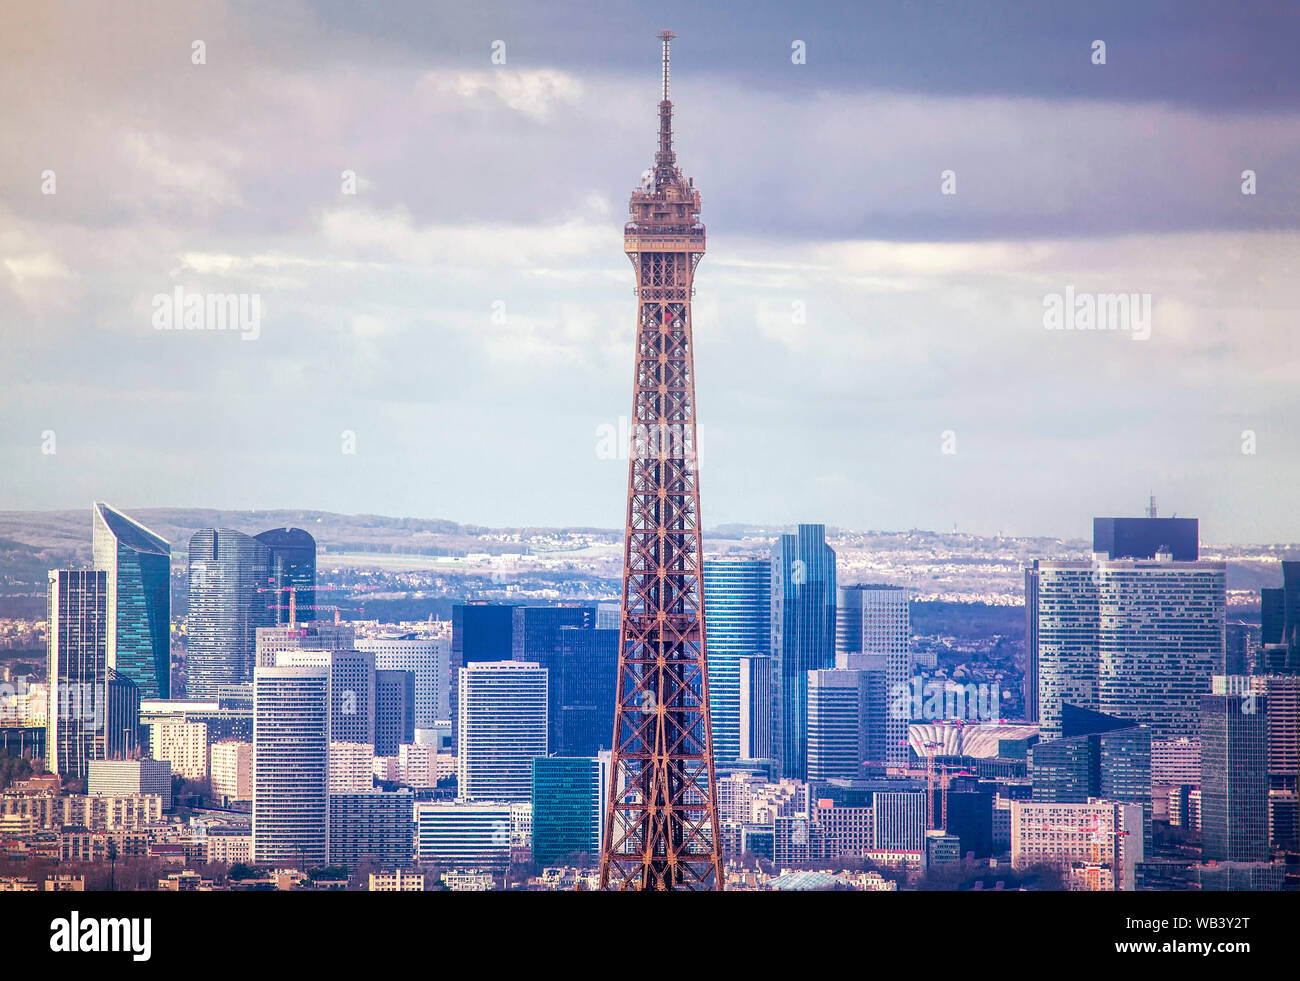 Paris aerial with Eiffel Tower and skyscrapers Stock Photo